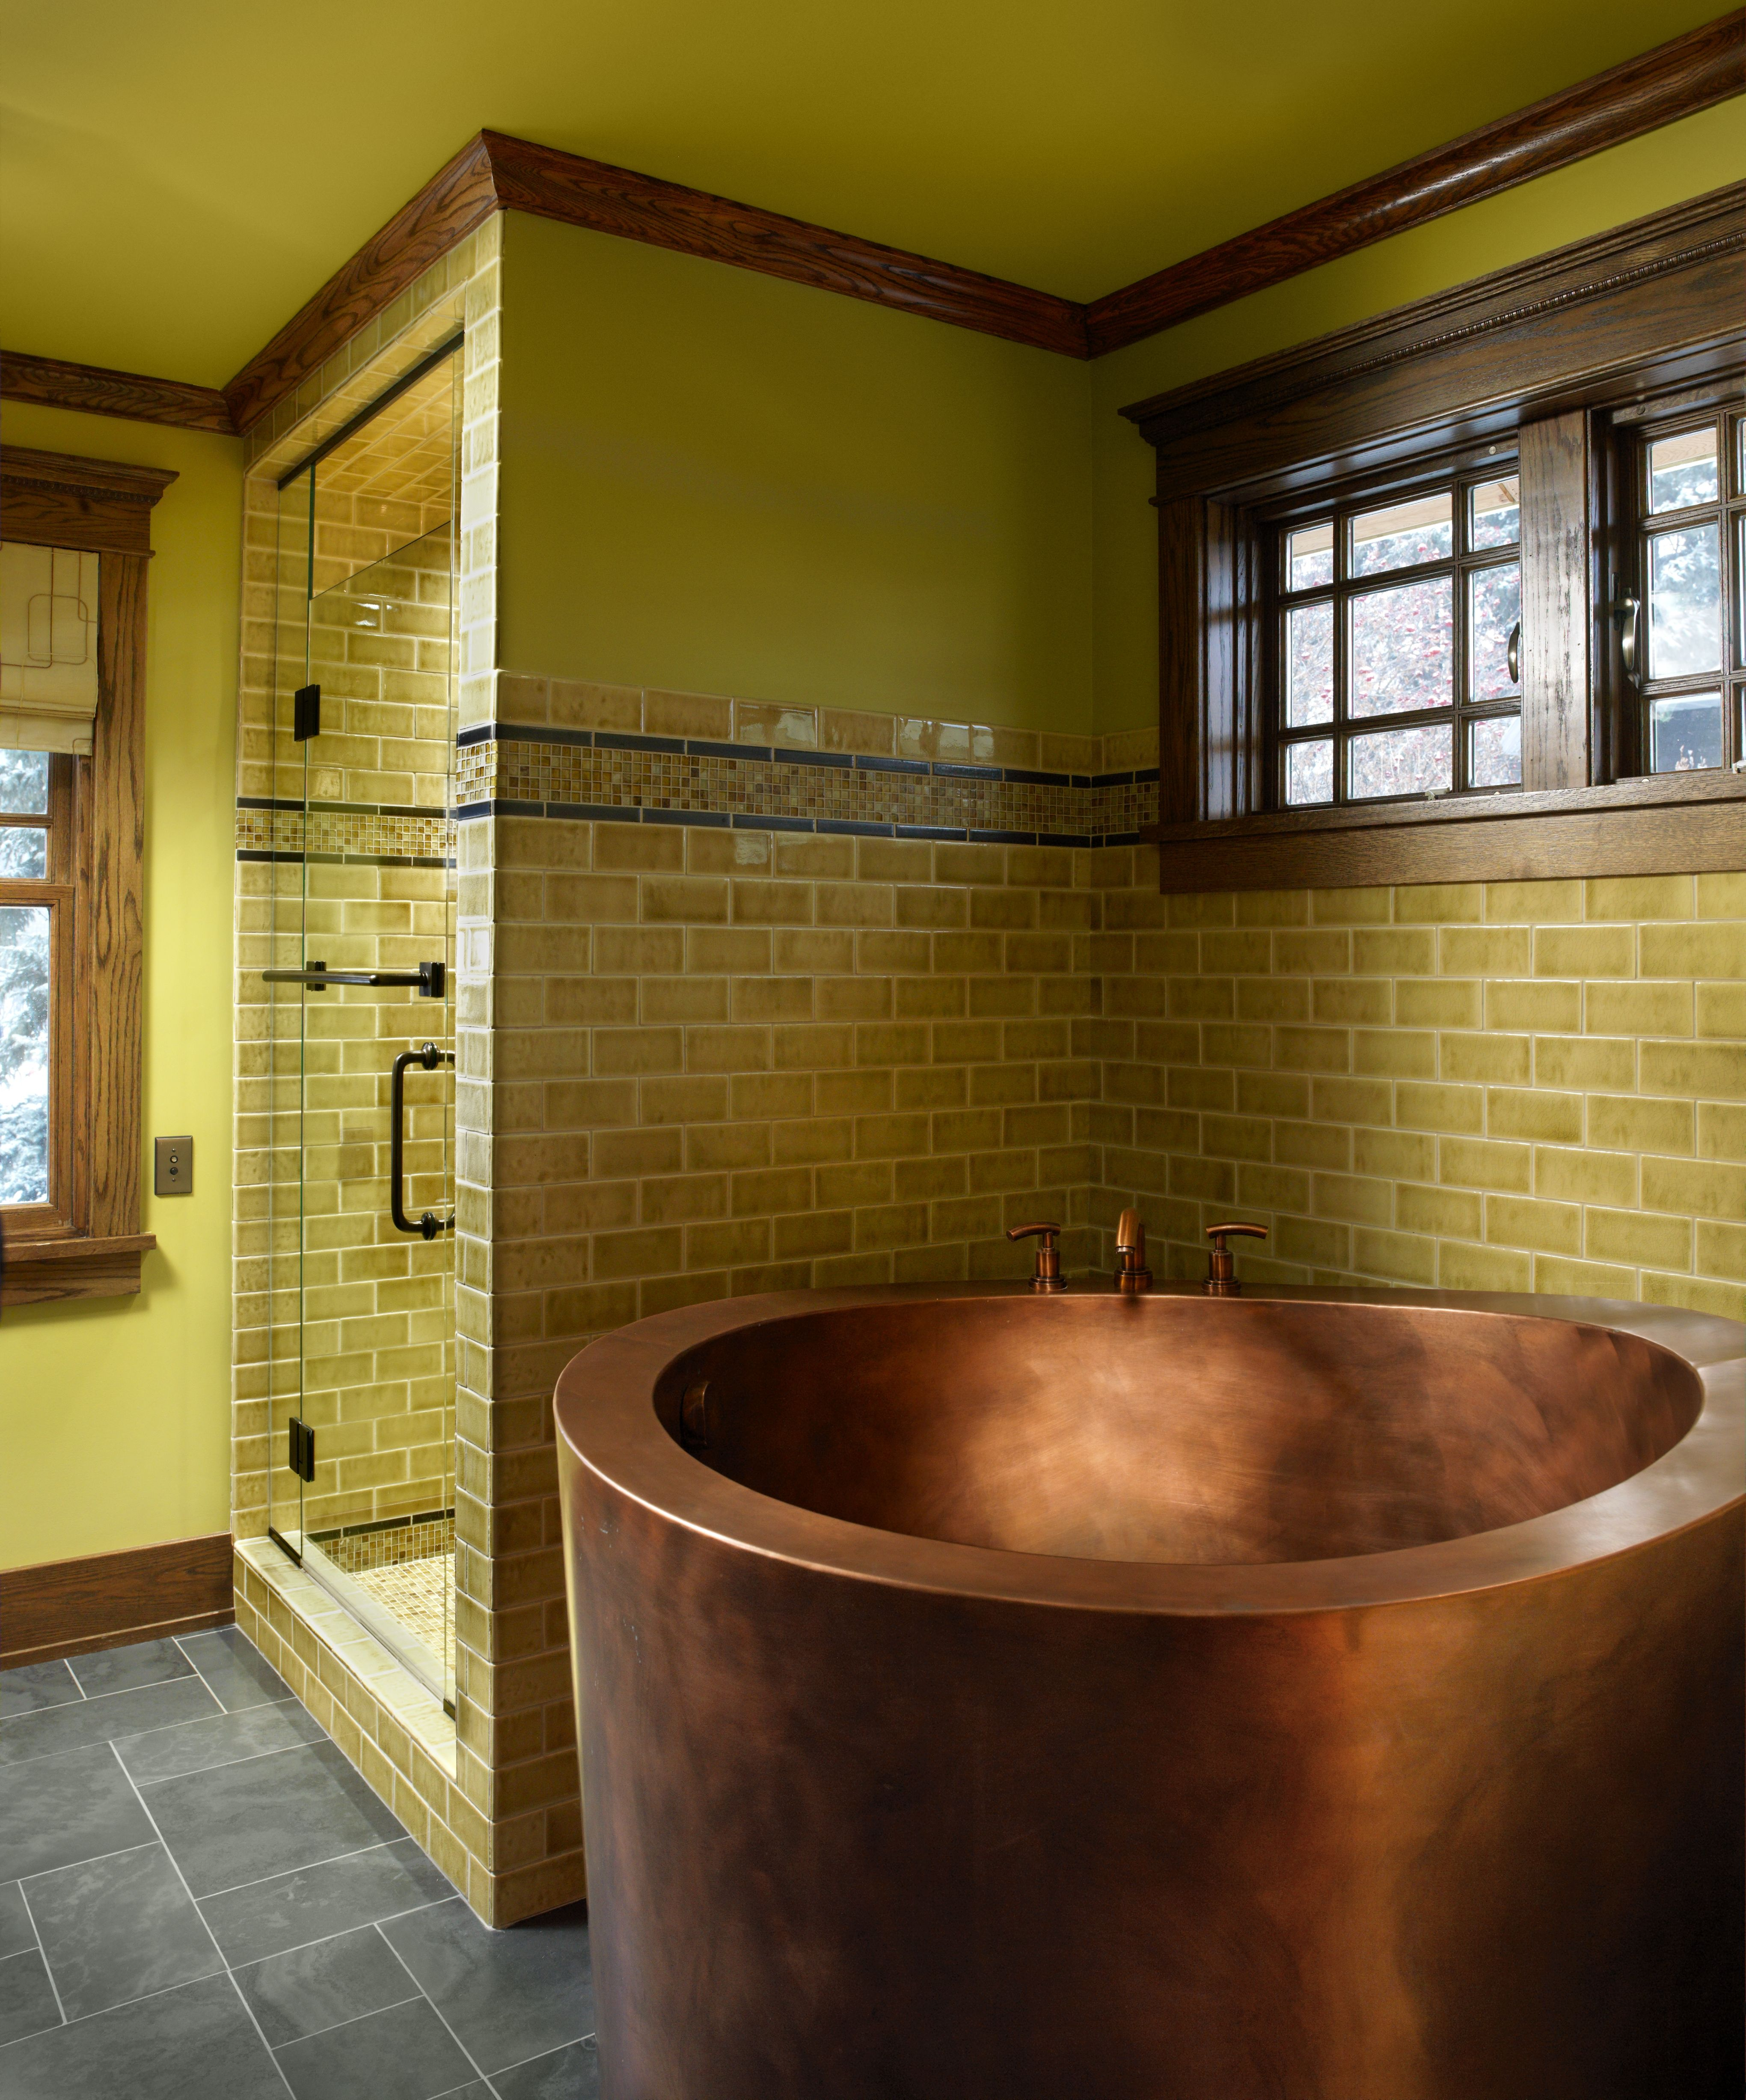 ideas recent bathtub master kdts remodel shower picture wells alcove astounding and magnificent with in or photos bathroom professional walk project for showers enchanting soaking soaker then maax as japanese tub